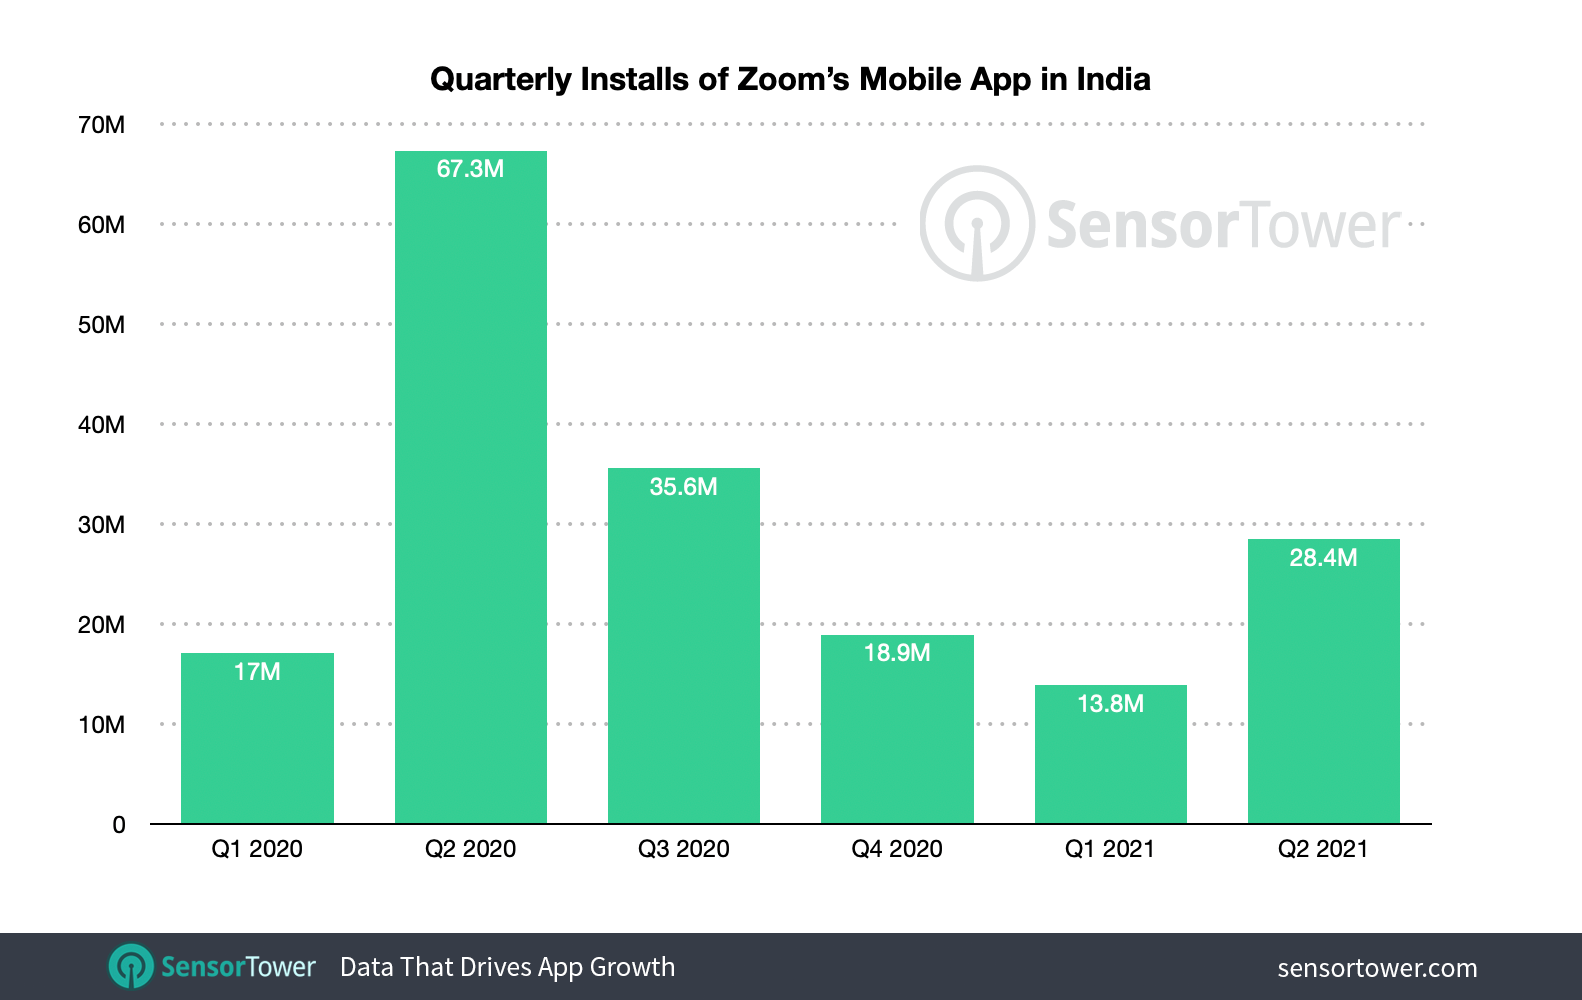 Zoom's installations increased by 106% to 28.4 million times in the second quarter of 2021